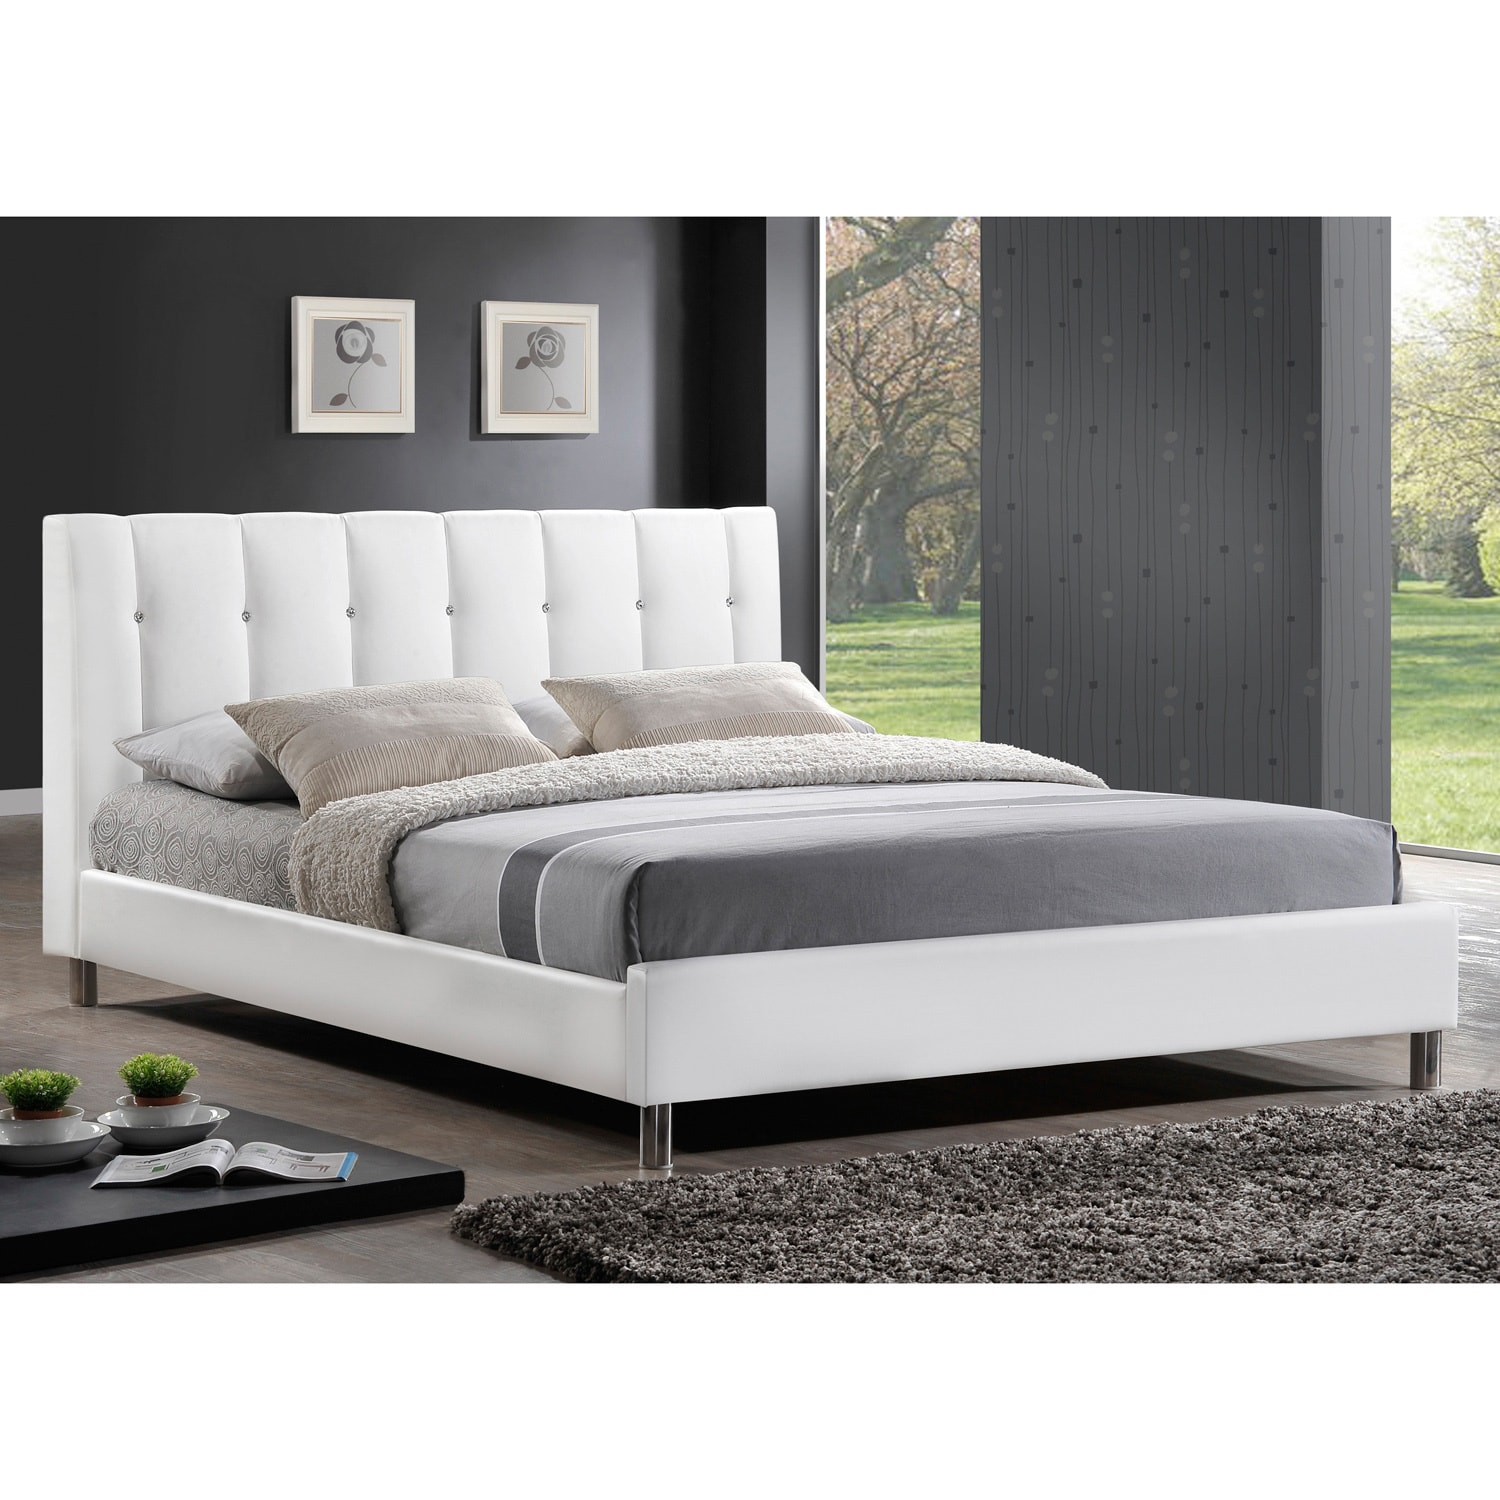 watch 76bc0 12817 Baxton Studio Vino Modern Queen-size Bed with Upholstered Headboard